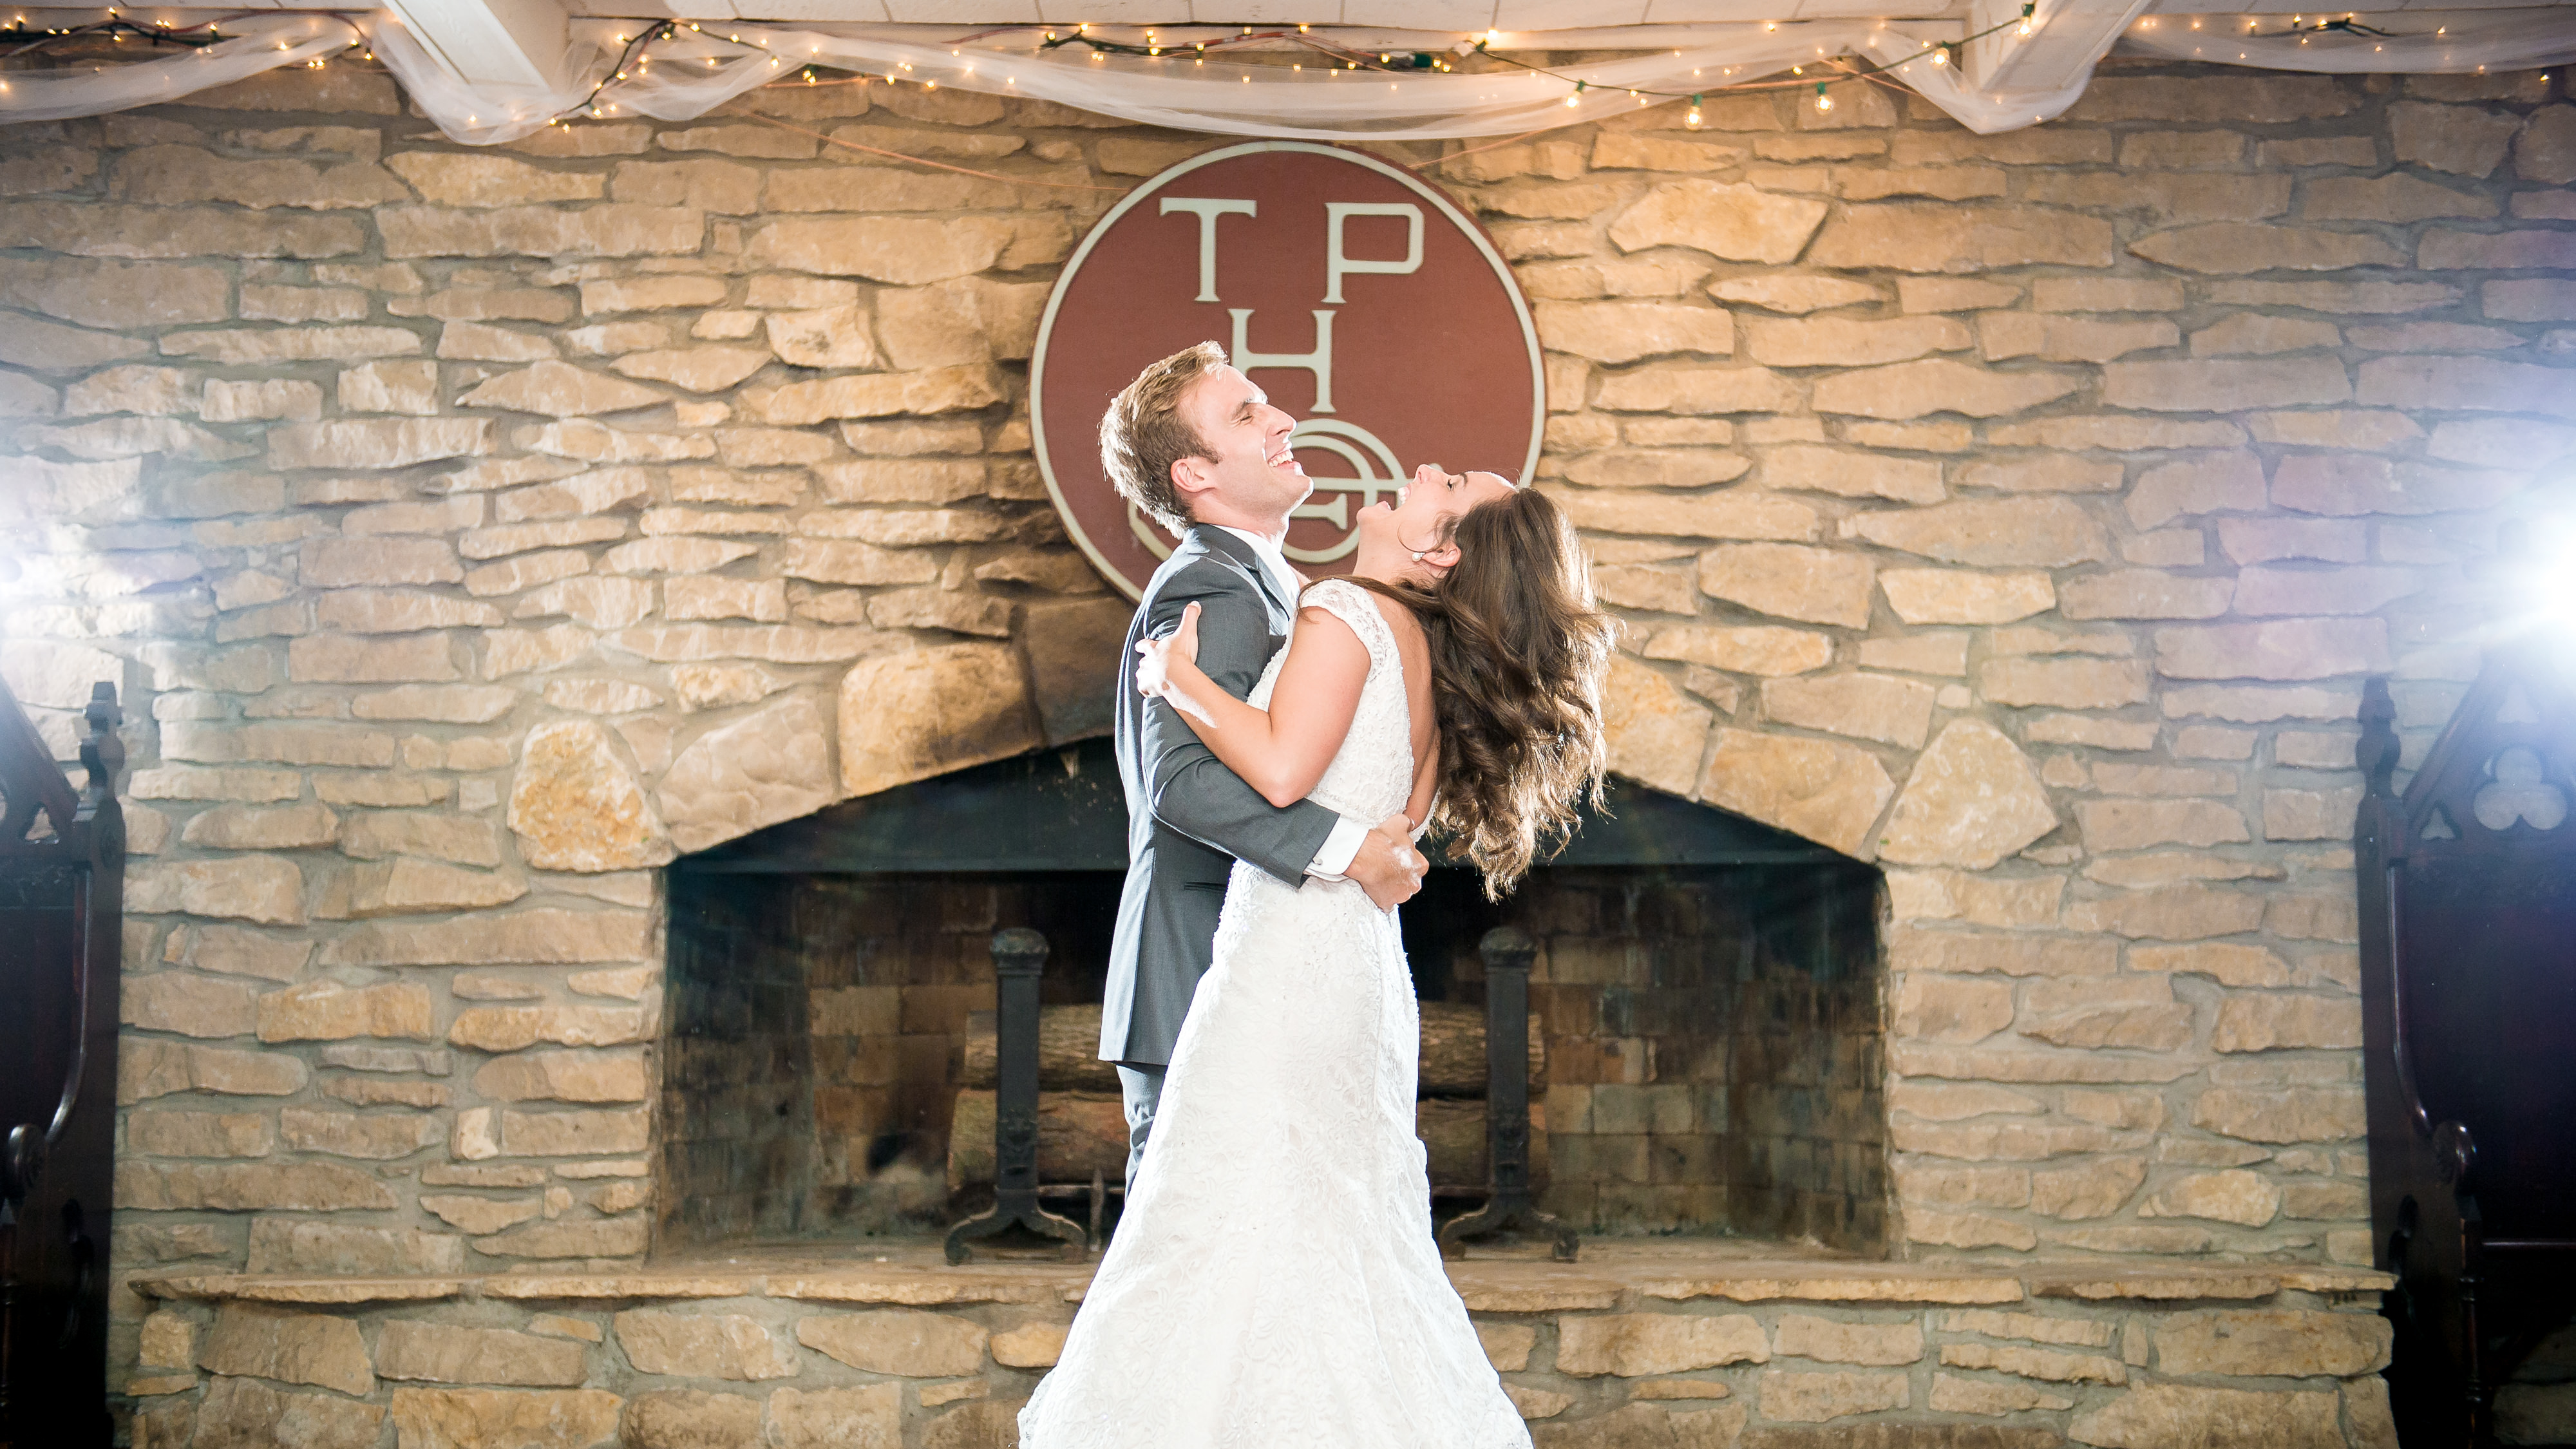 Sweet and funny laughing during a first dance